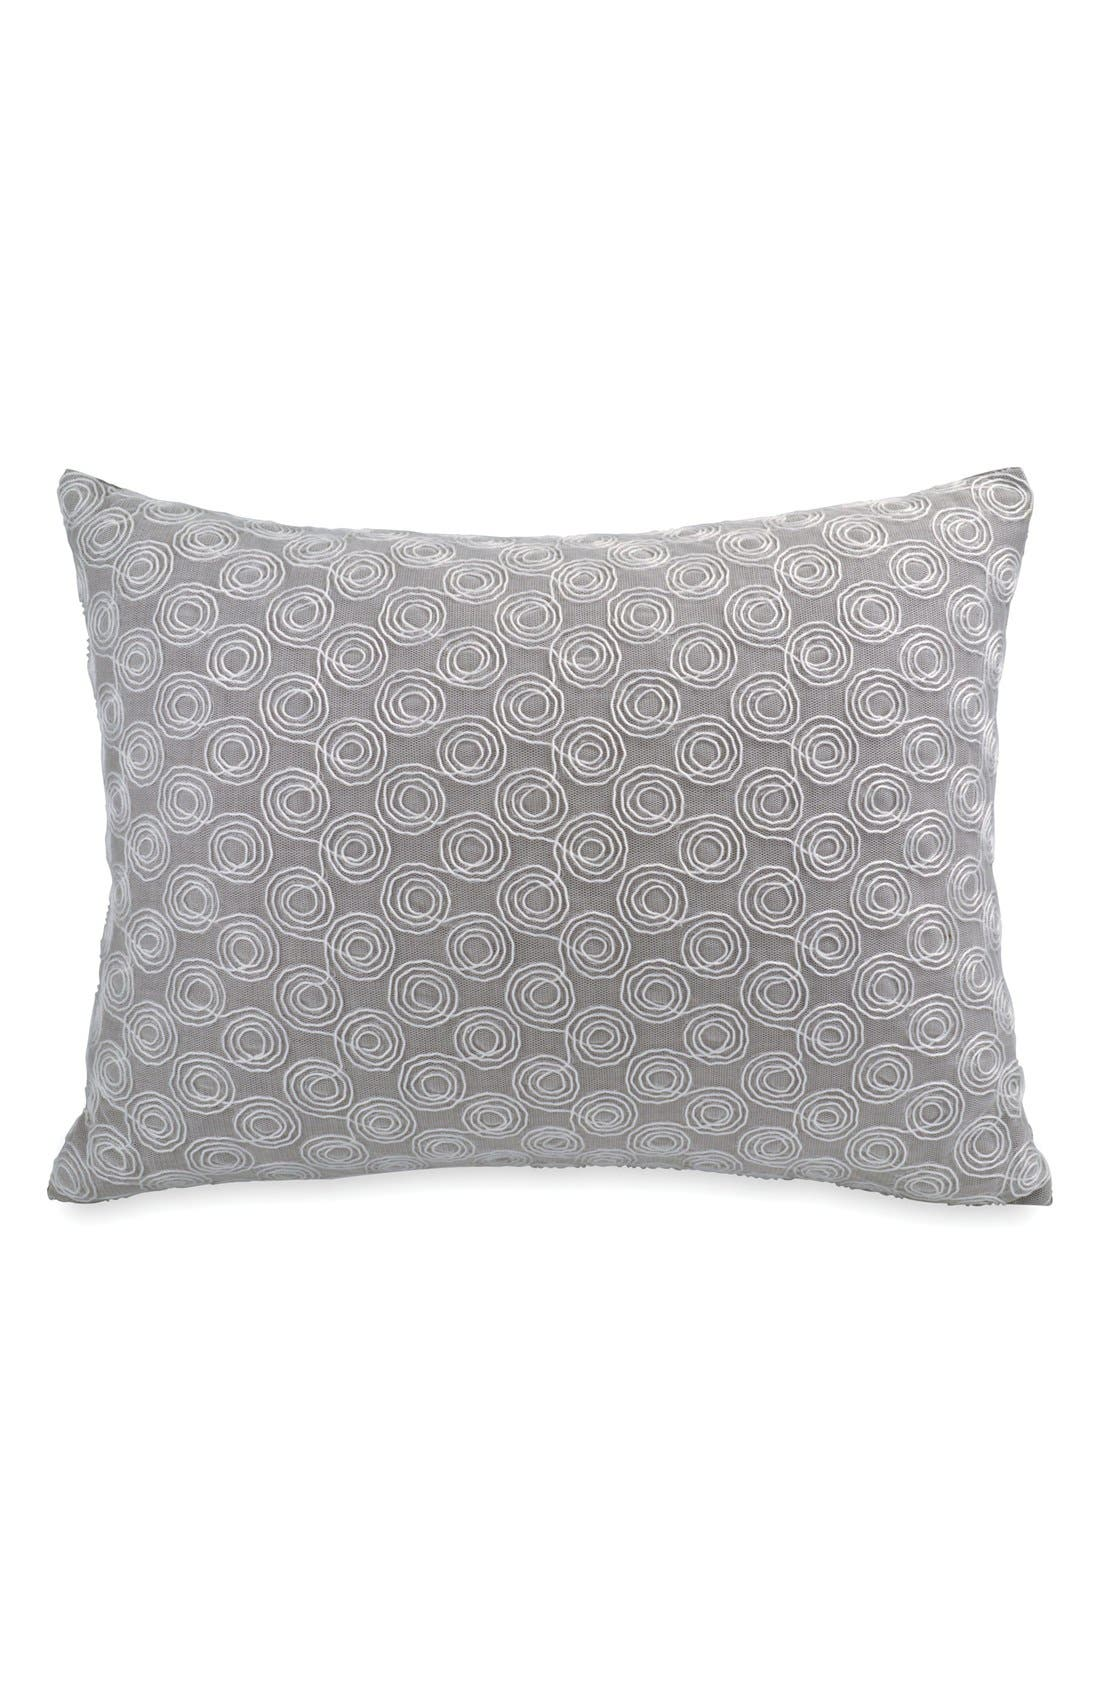 'Loft Stripe' Embroidered Pillow,                             Main thumbnail 1, color,                             Grey